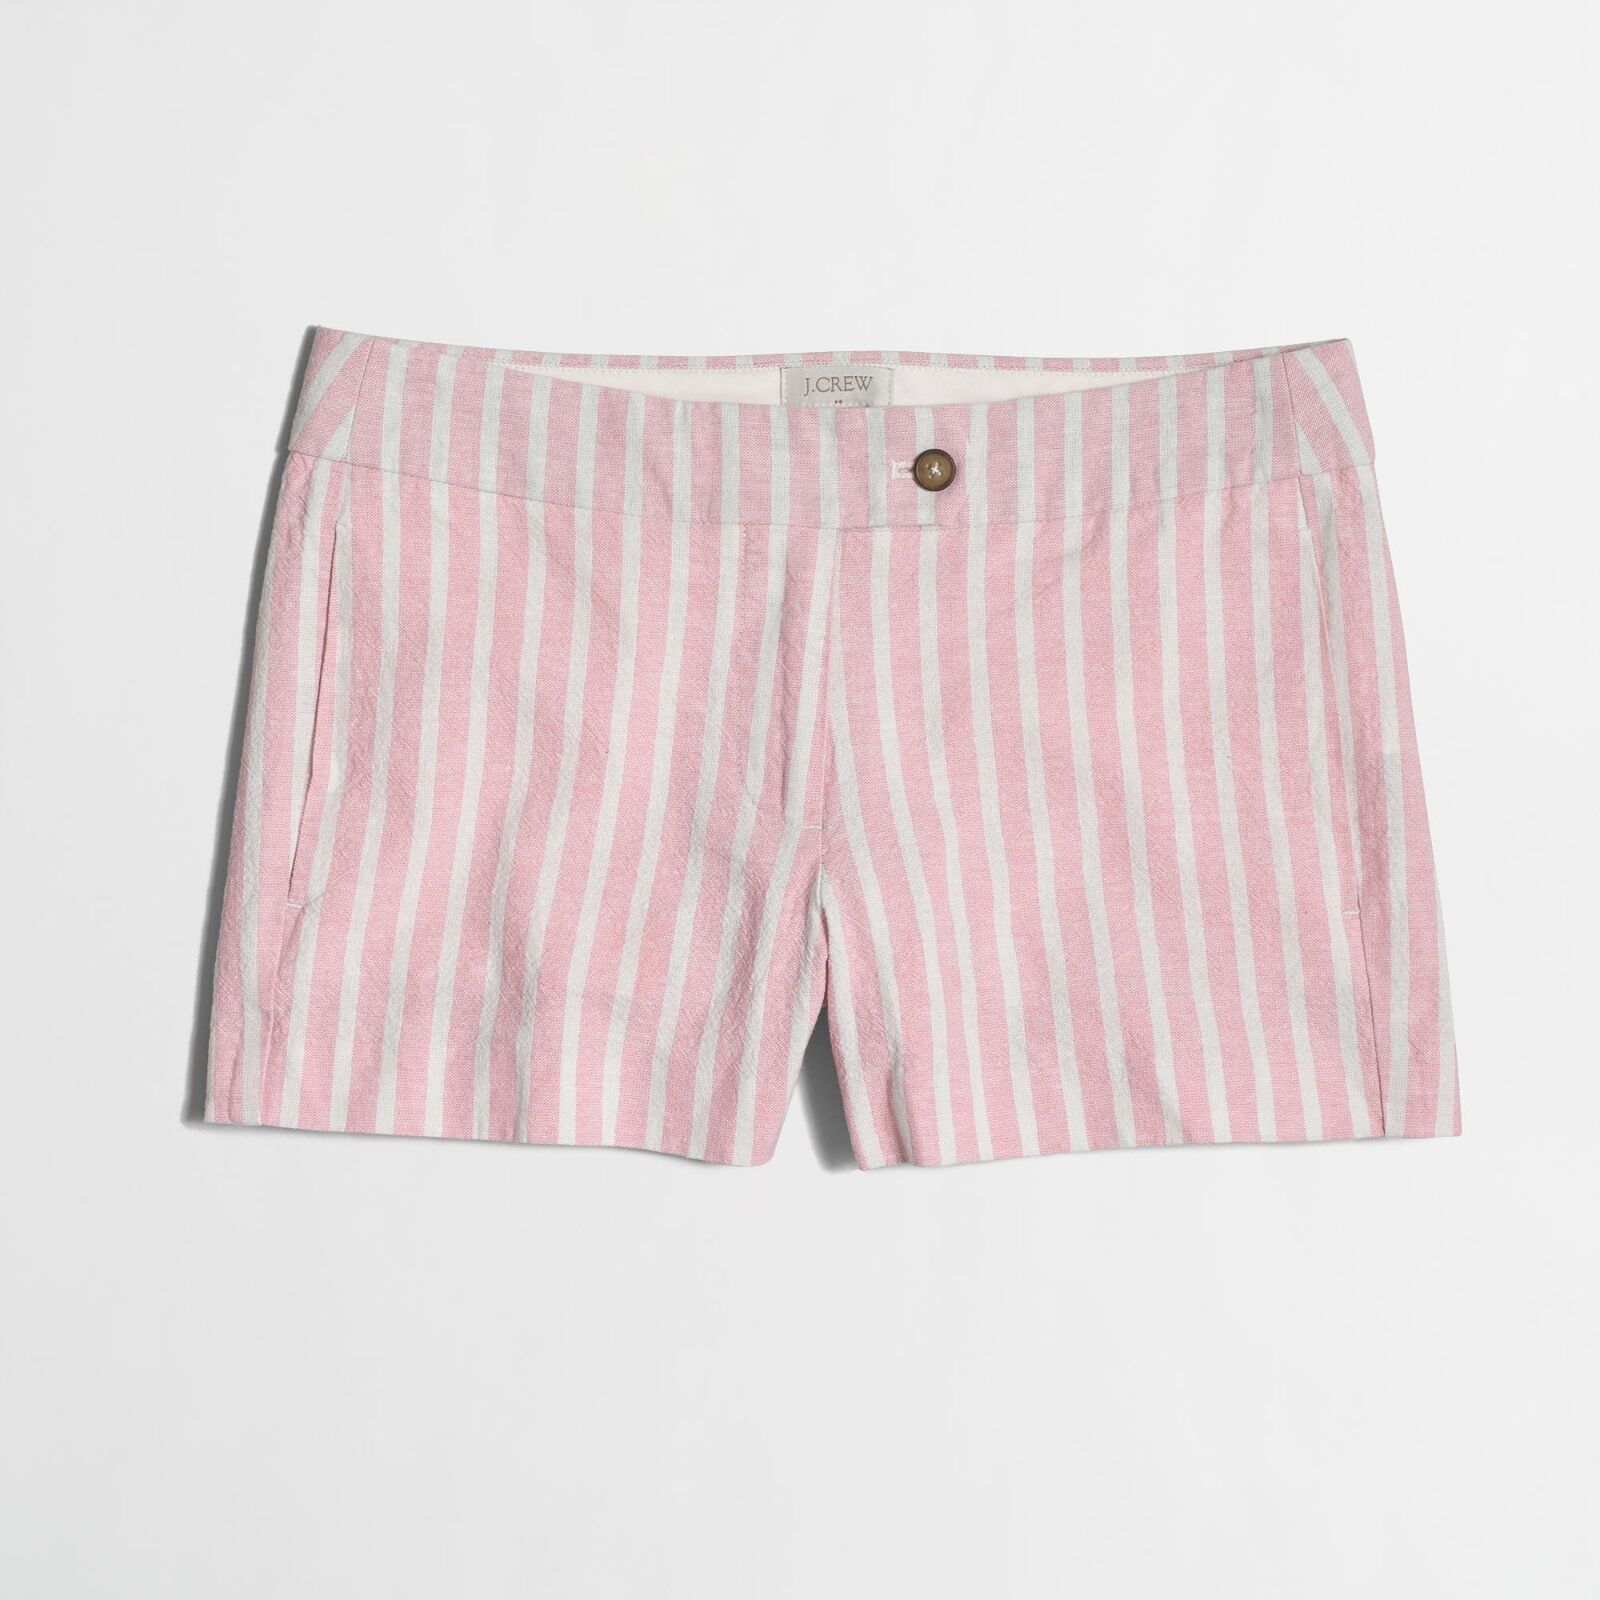 J.CREW Ladies 3  Cotton Linen Pink & White Stripe Short  Size 6  New with Tag